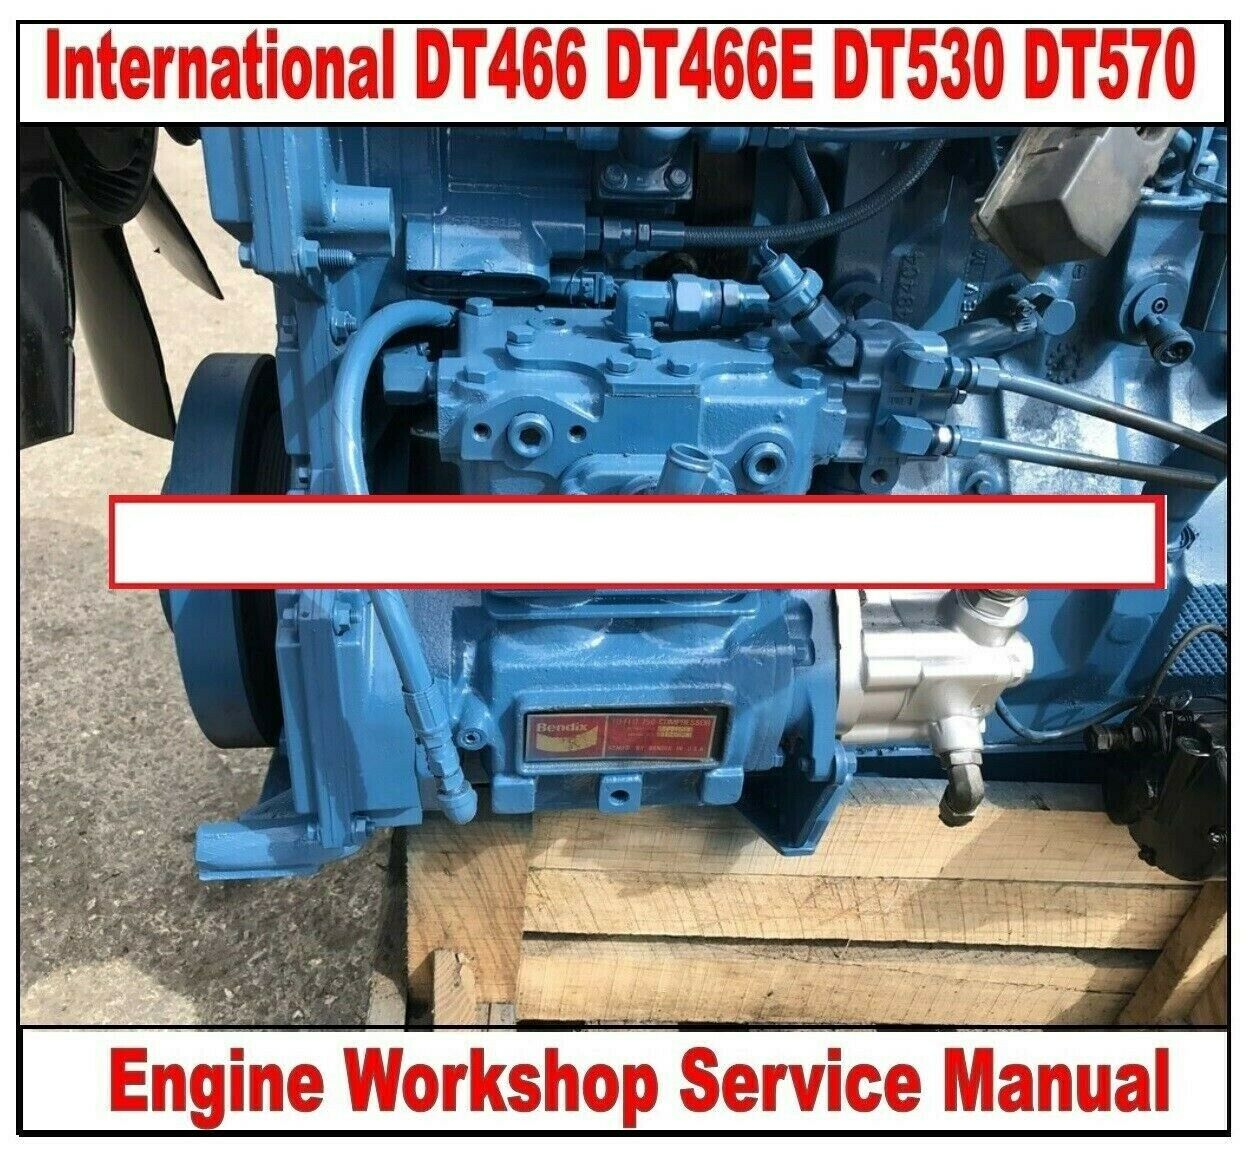 International DT466 DT466E DT530 DT570 Engine Workshop Service Manual on CD  1 of 12Only 4 available ...